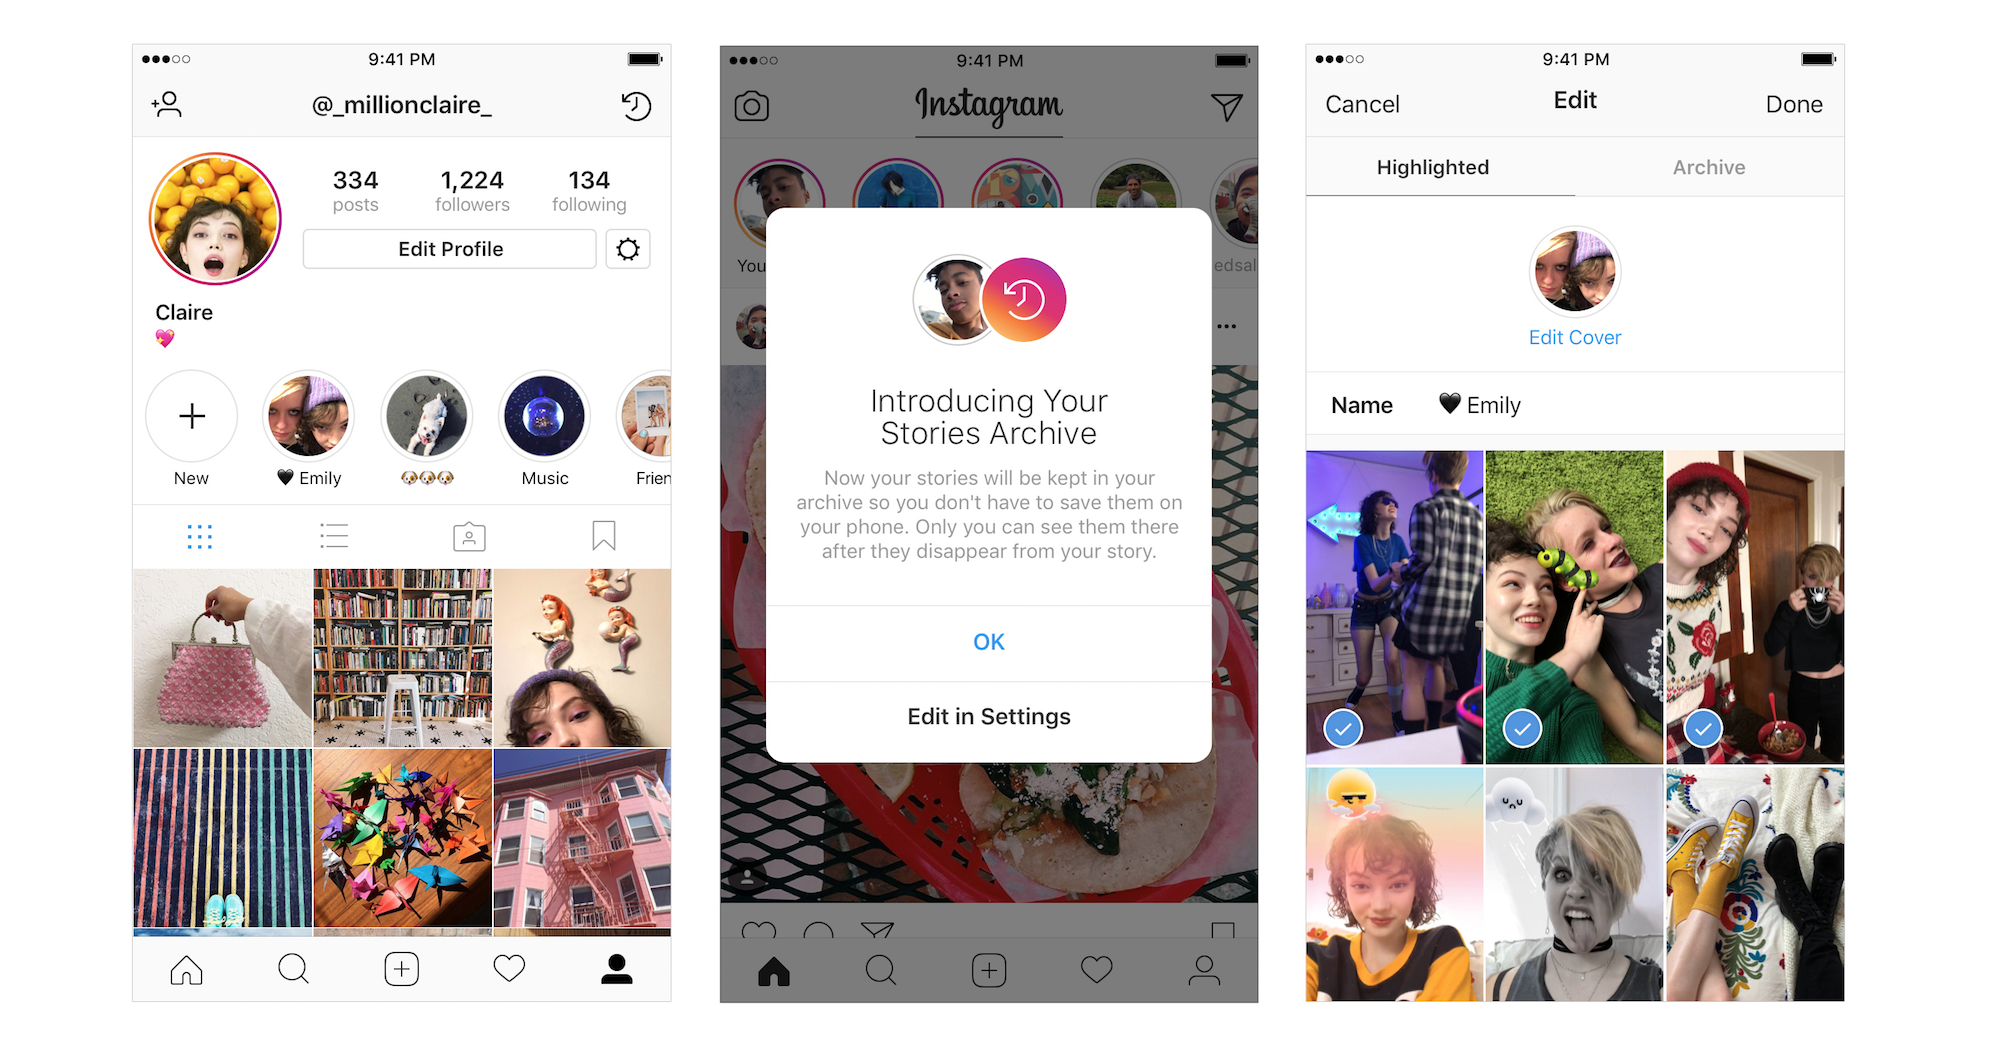 Instagram lets you Archive and Highlight your favorite expired